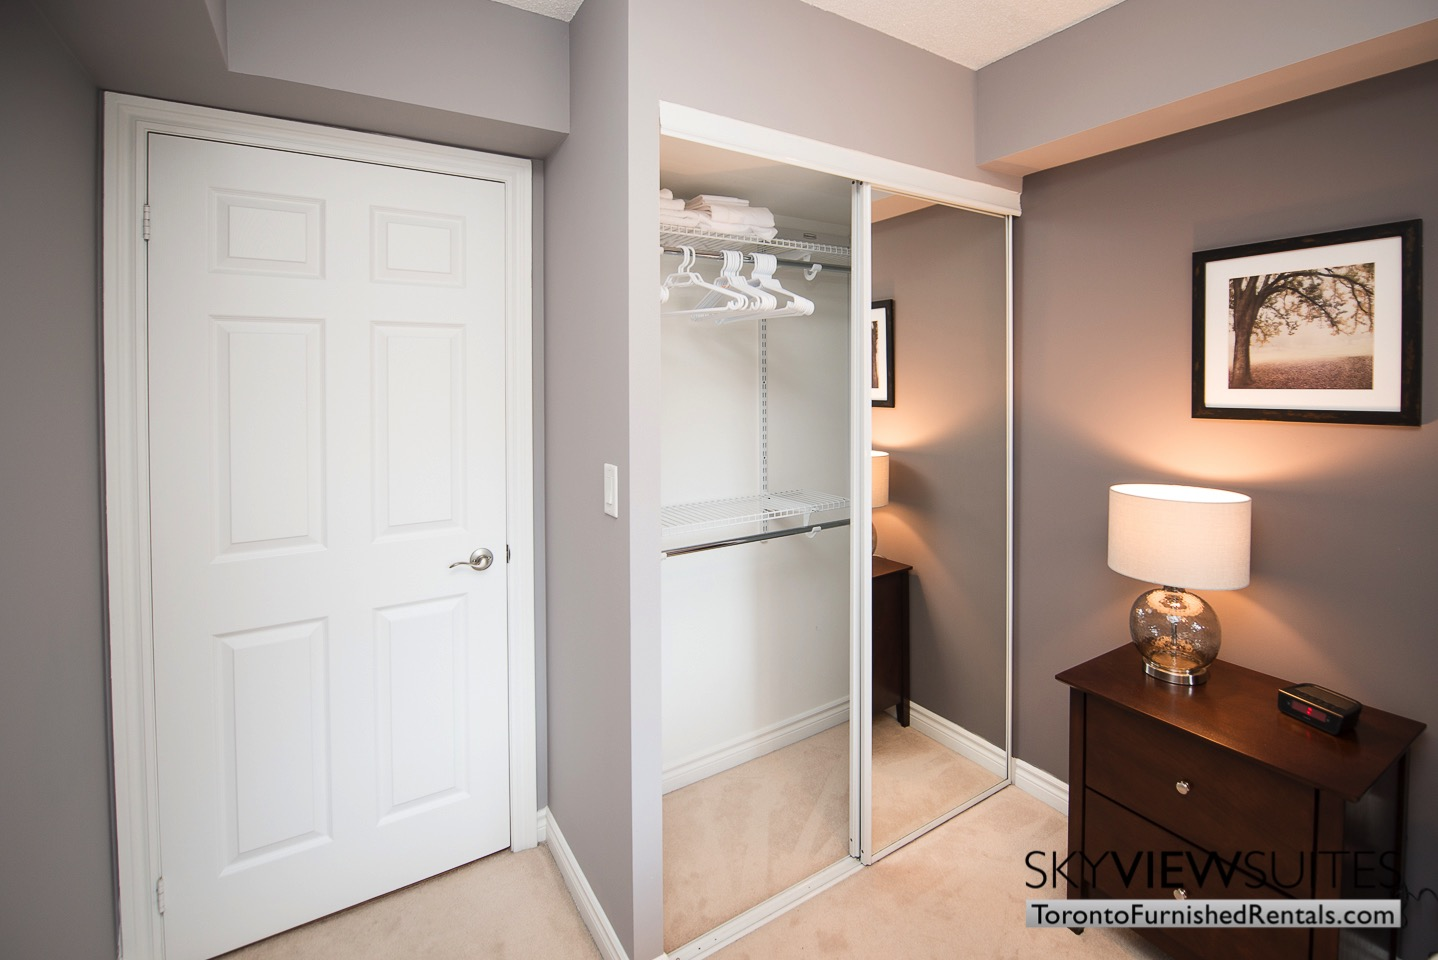 Wellington and Blue Jays Way executive rentals toronto bedroom closet space ample